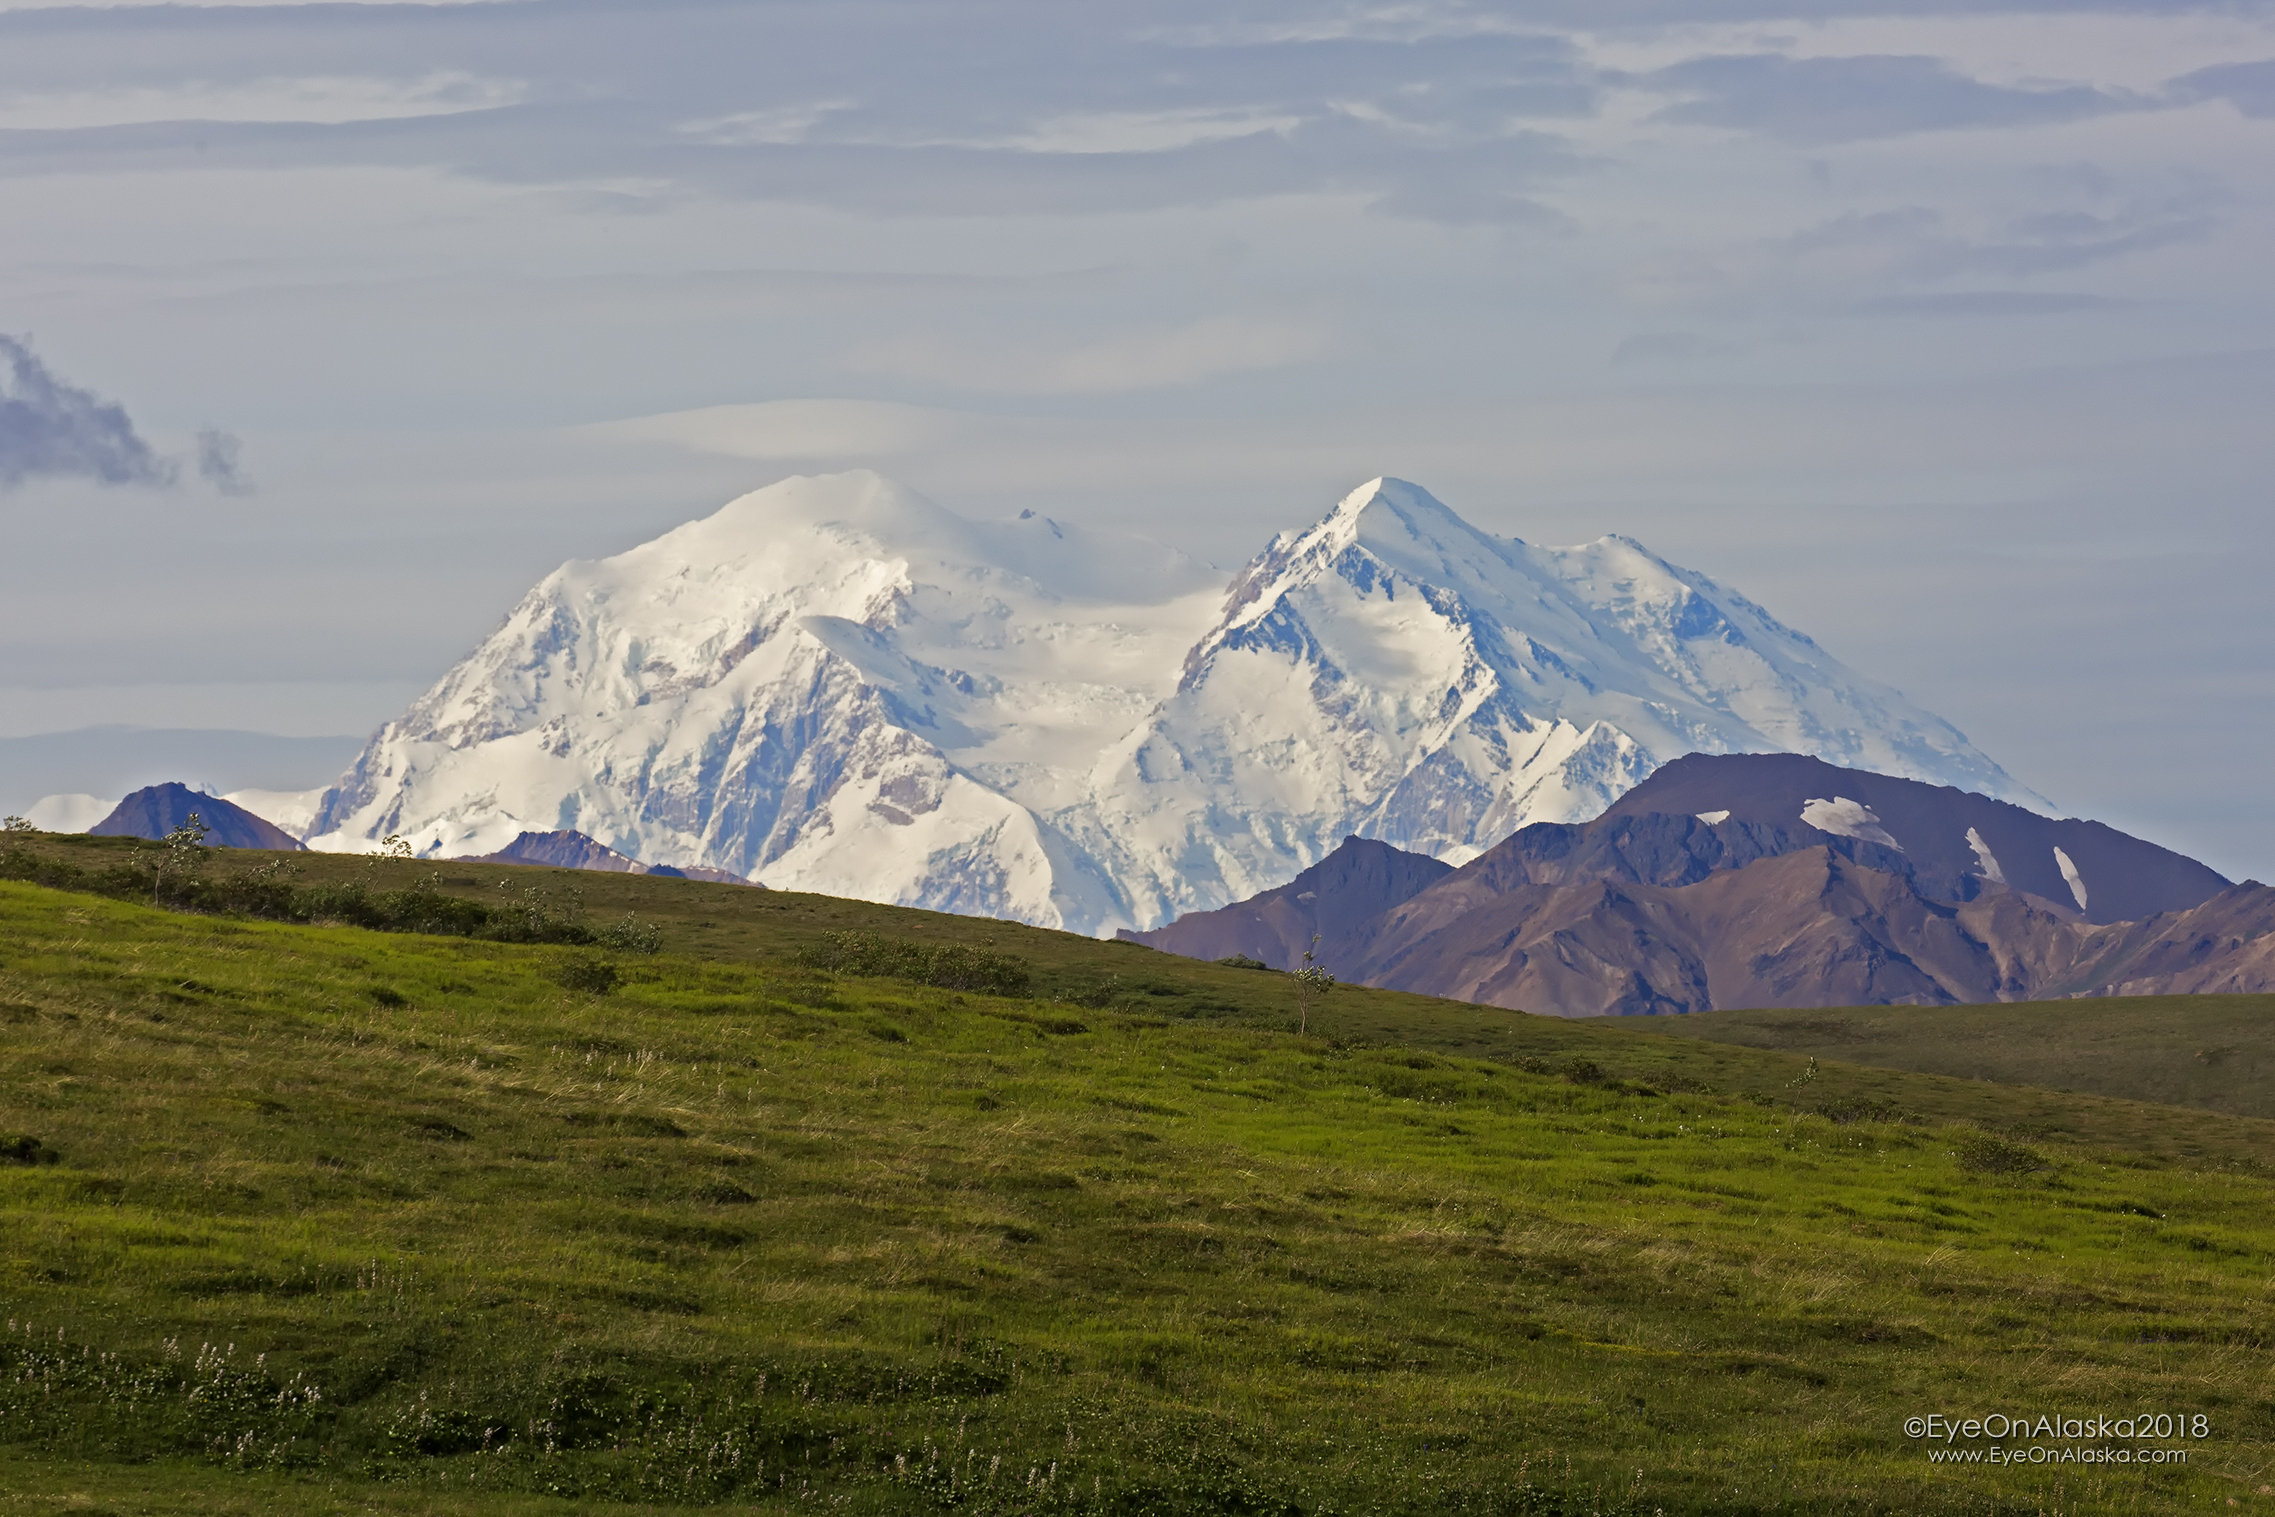 Denali is out once again for us on our last full day in the park.